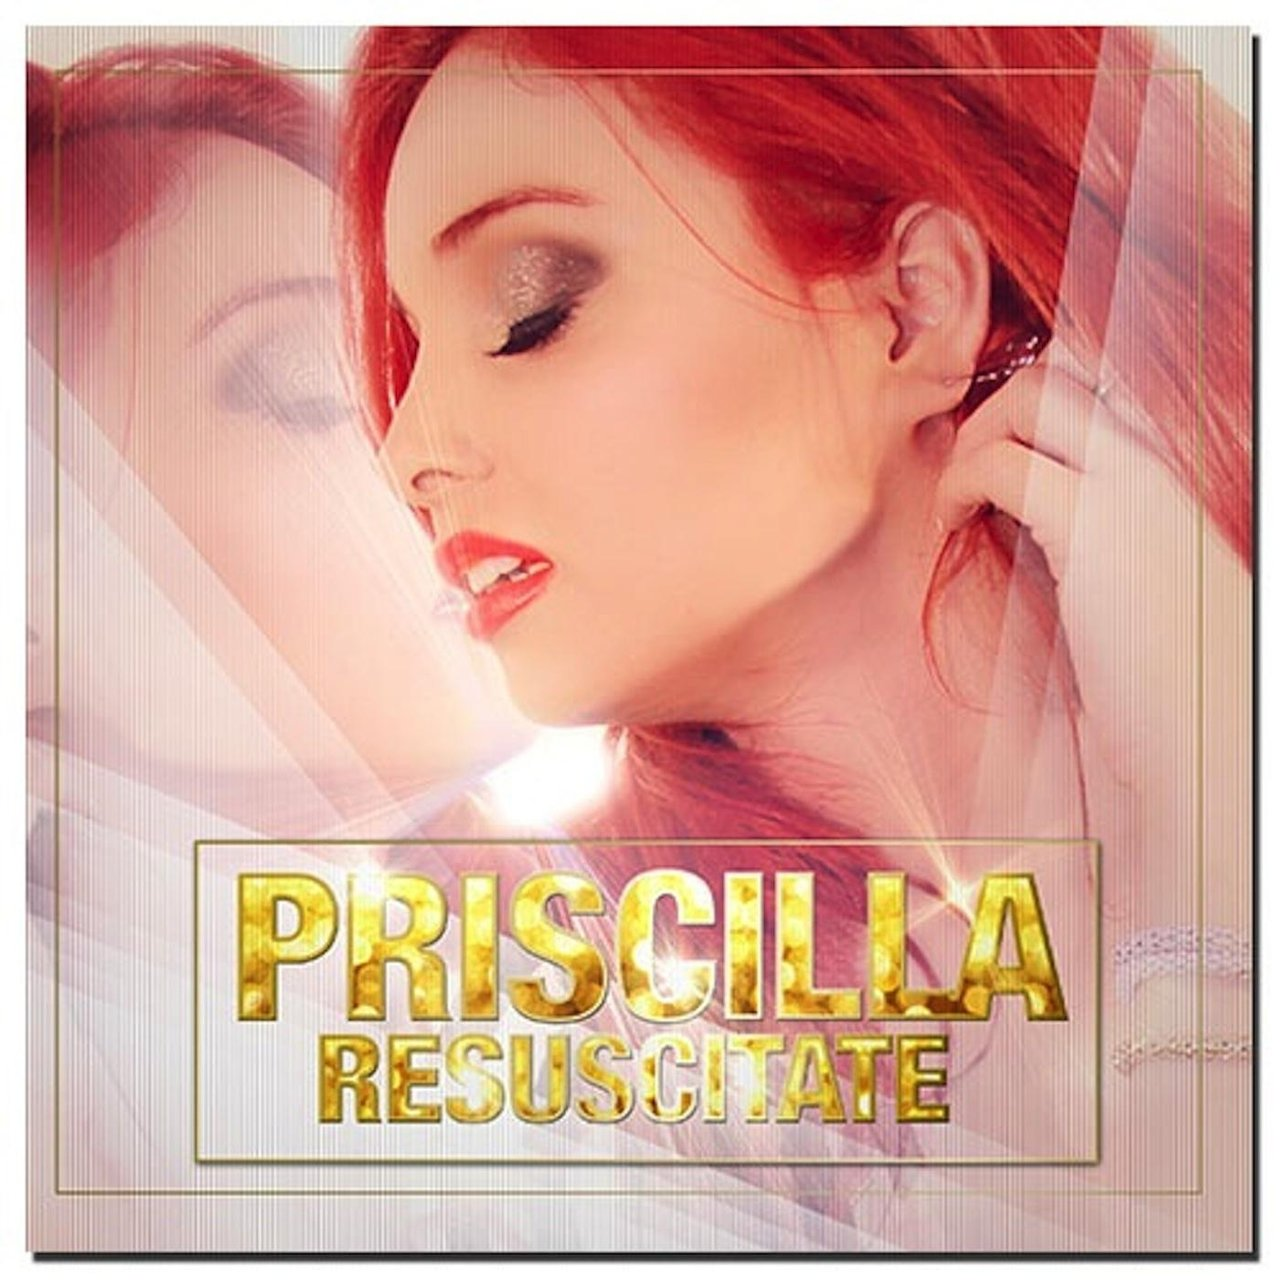 Tidal listen to sexy butt by priscilla on tidal for 1234 get on the dance floor song download free